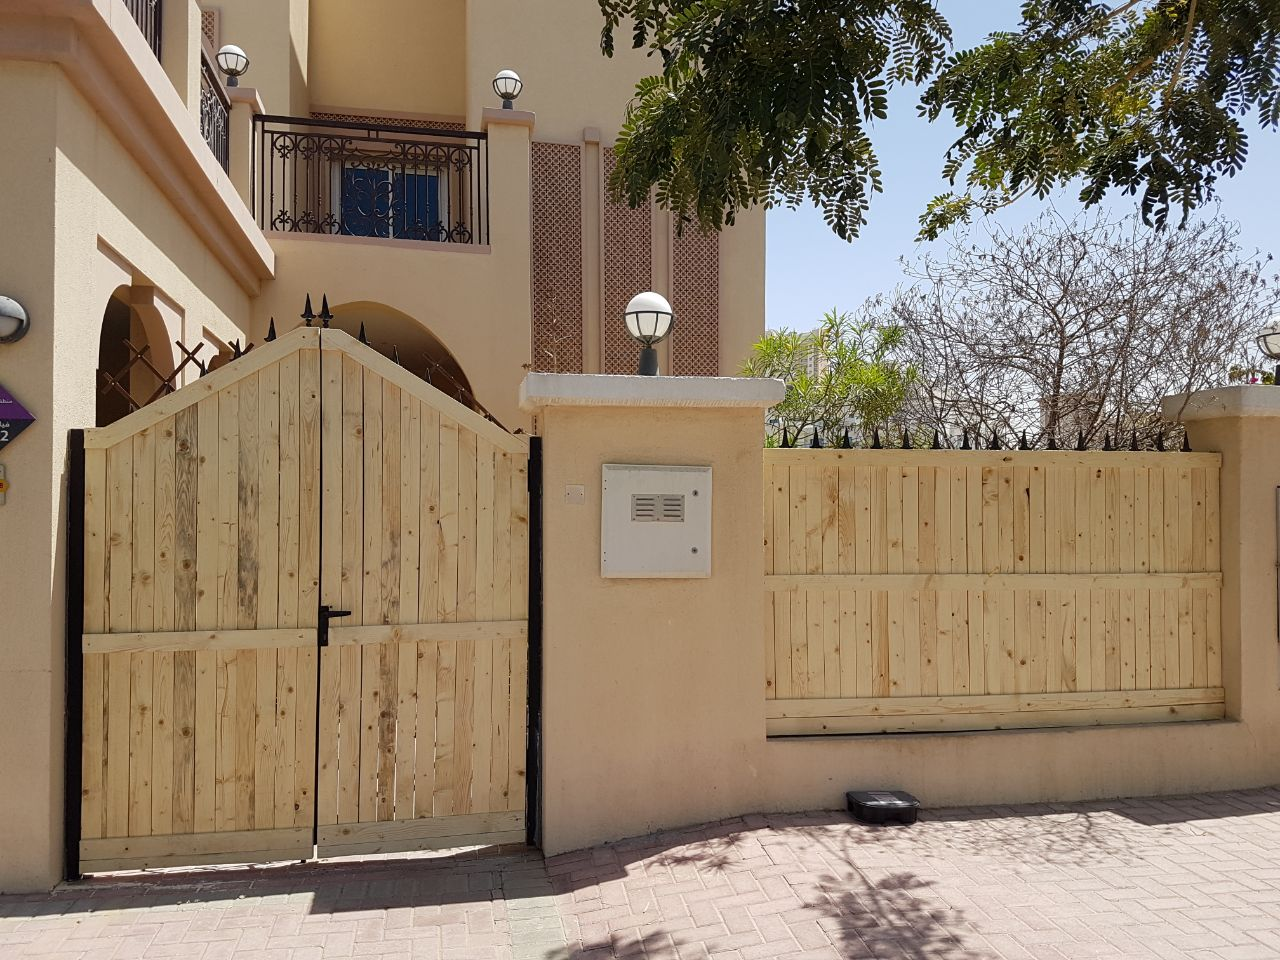 All Stories From The Village Jumeirah Triangle Summer Custom Fit Gate Contact Edward At K9 On 0502296538 To Have Your Own Design